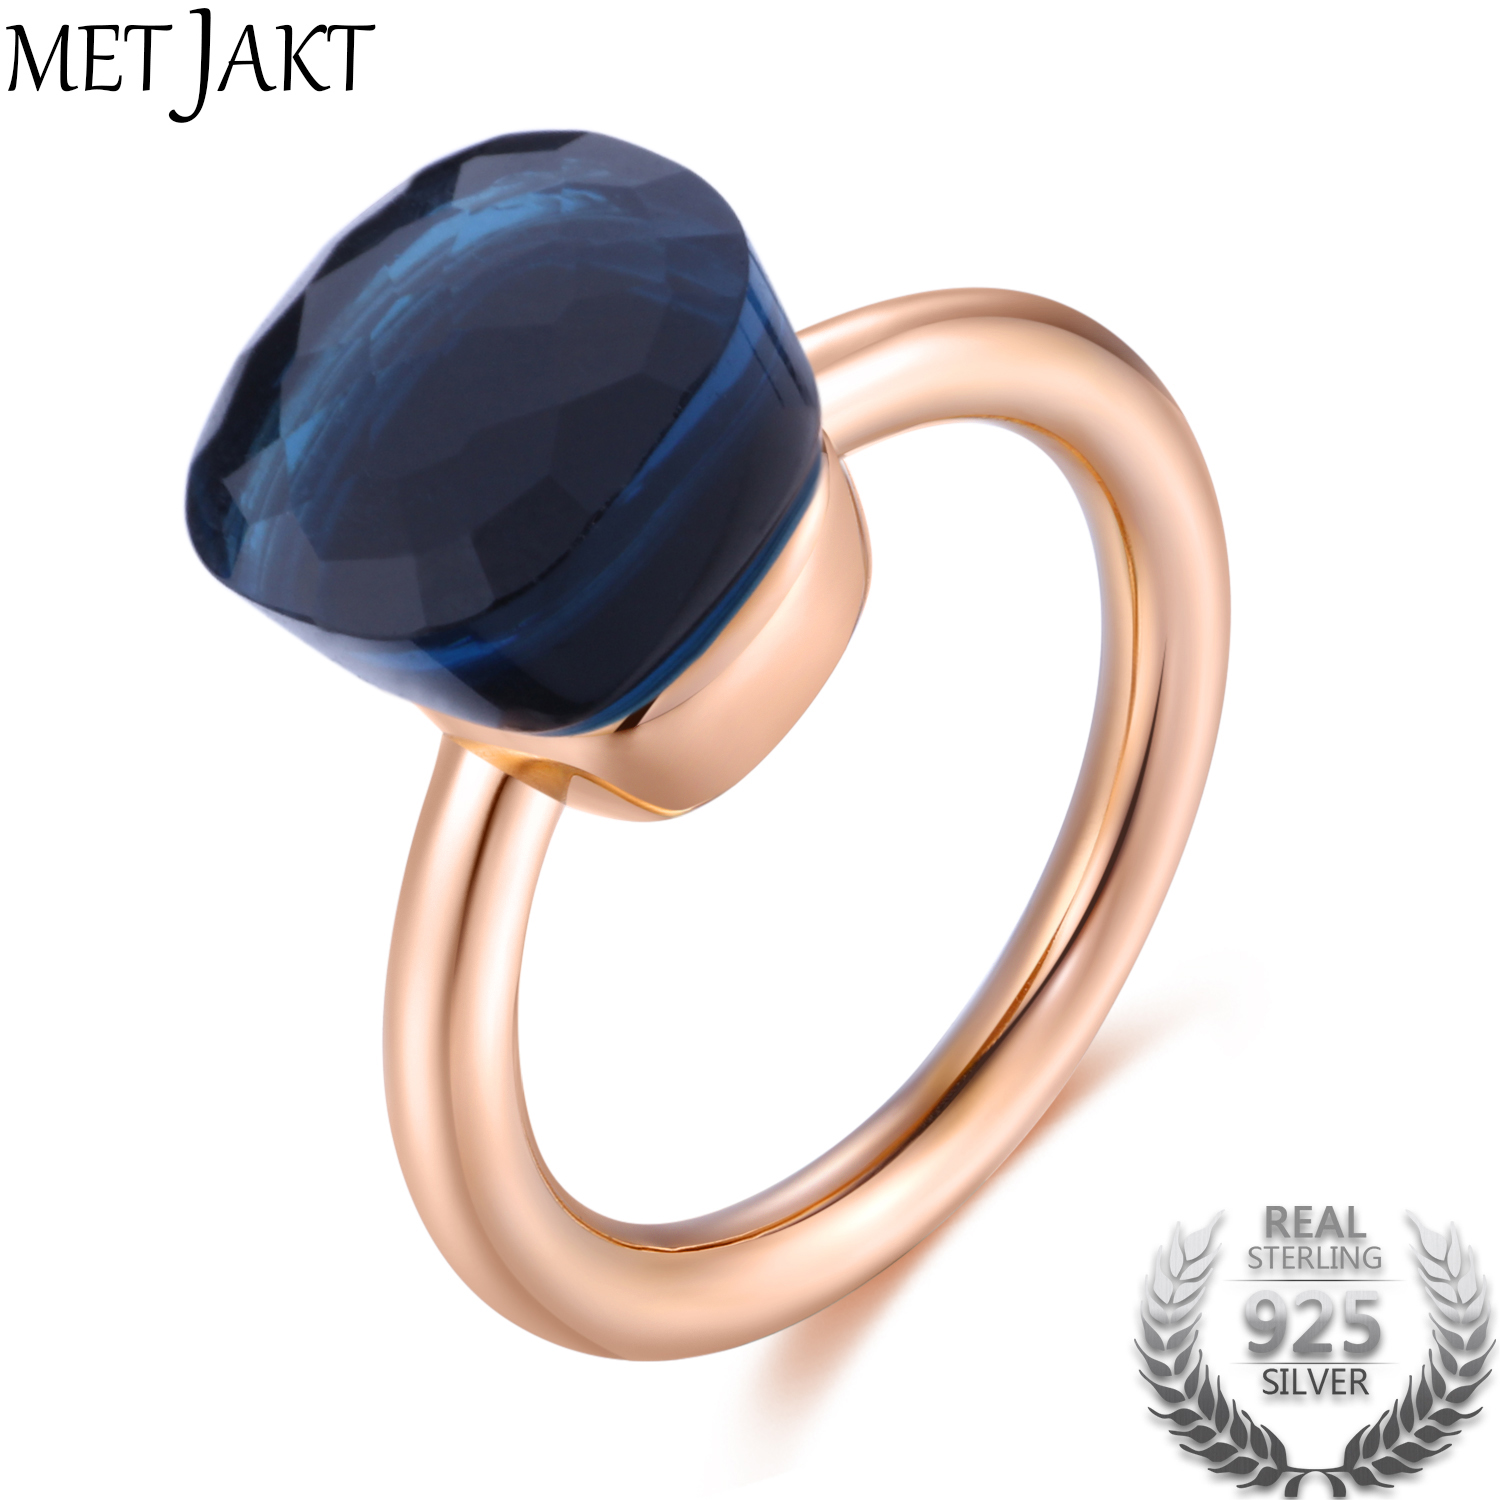 MetJakt 14K Rose Gold Color Topaz Ring 925 Sterling Silver Classic Rings with Natural Gemstone Agate for Women Best JewelryMetJakt 14K Rose Gold Color Topaz Ring 925 Sterling Silver Classic Rings with Natural Gemstone Agate for Women Best Jewelry